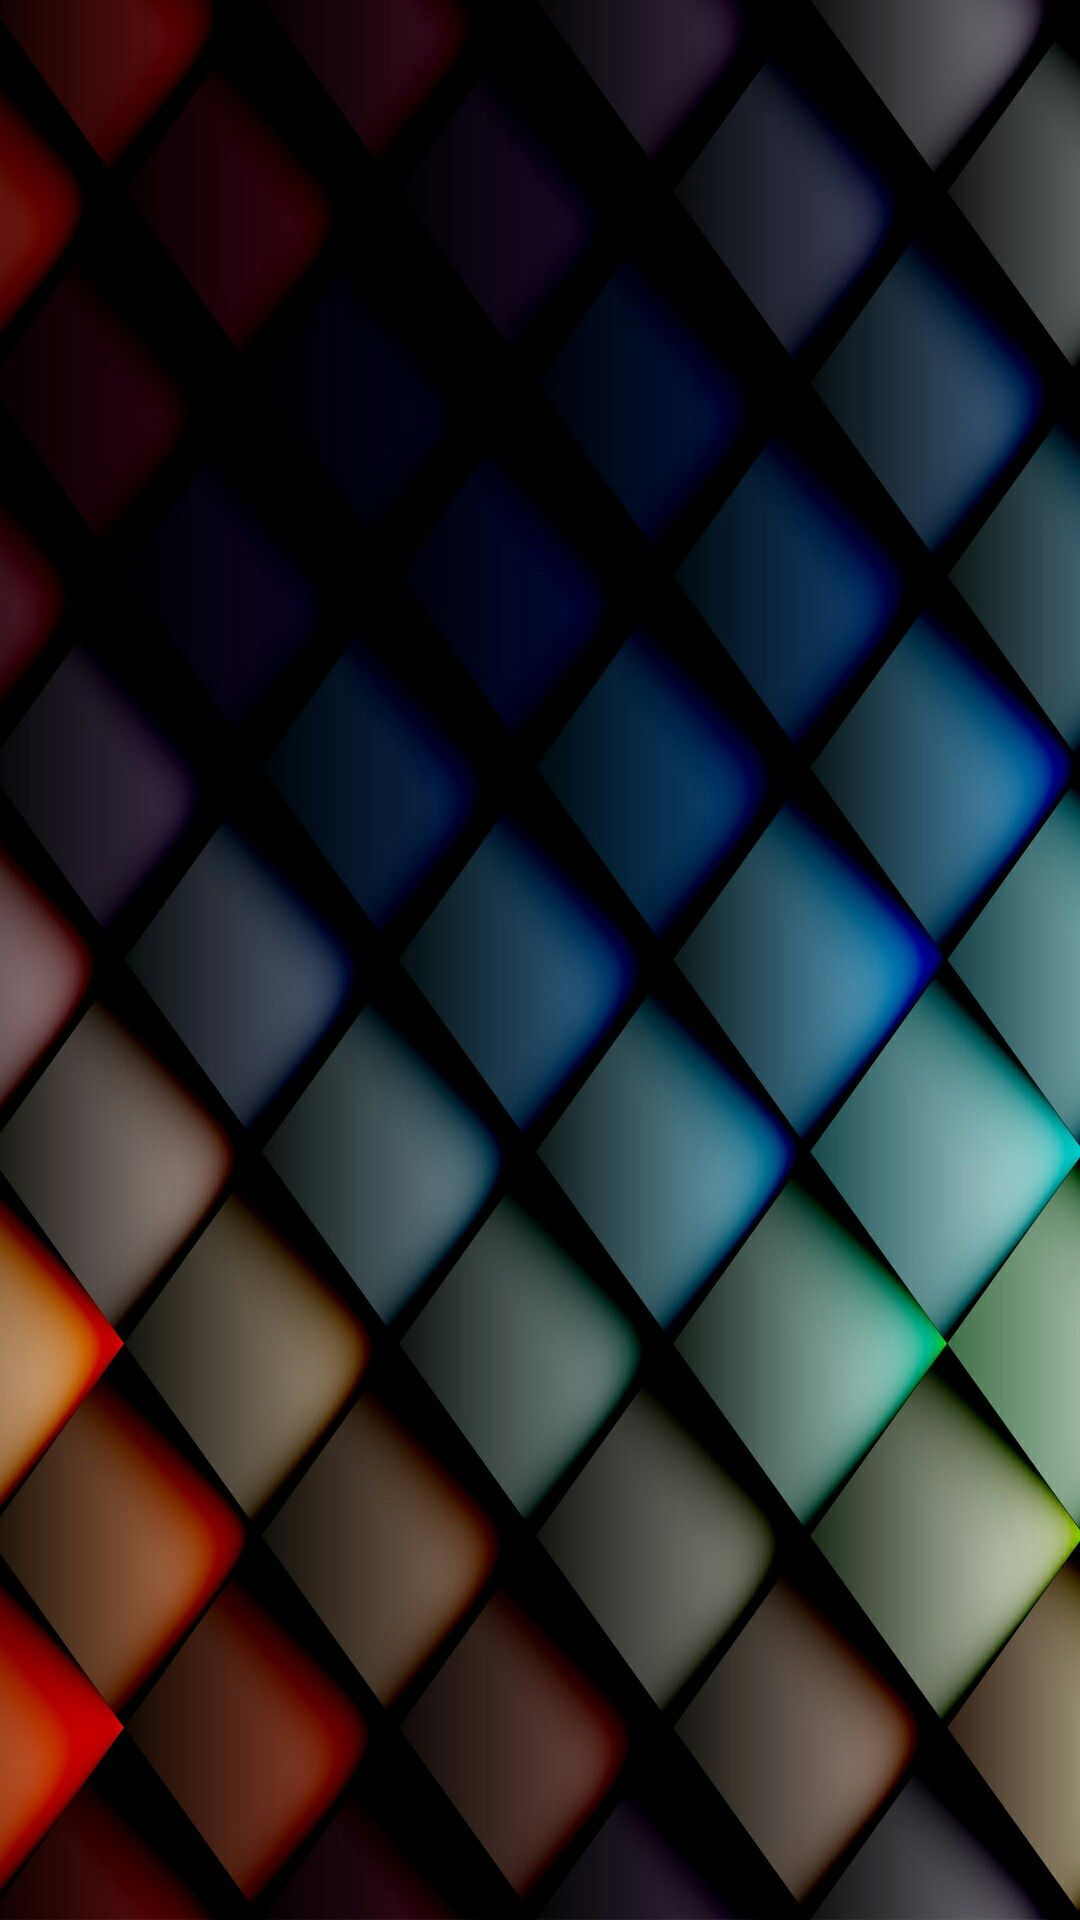 Colorful 3D Wallpaper   *Abstract and Geometric Wallpapers   Iphone wallpaper, Mobile wallpaper ...